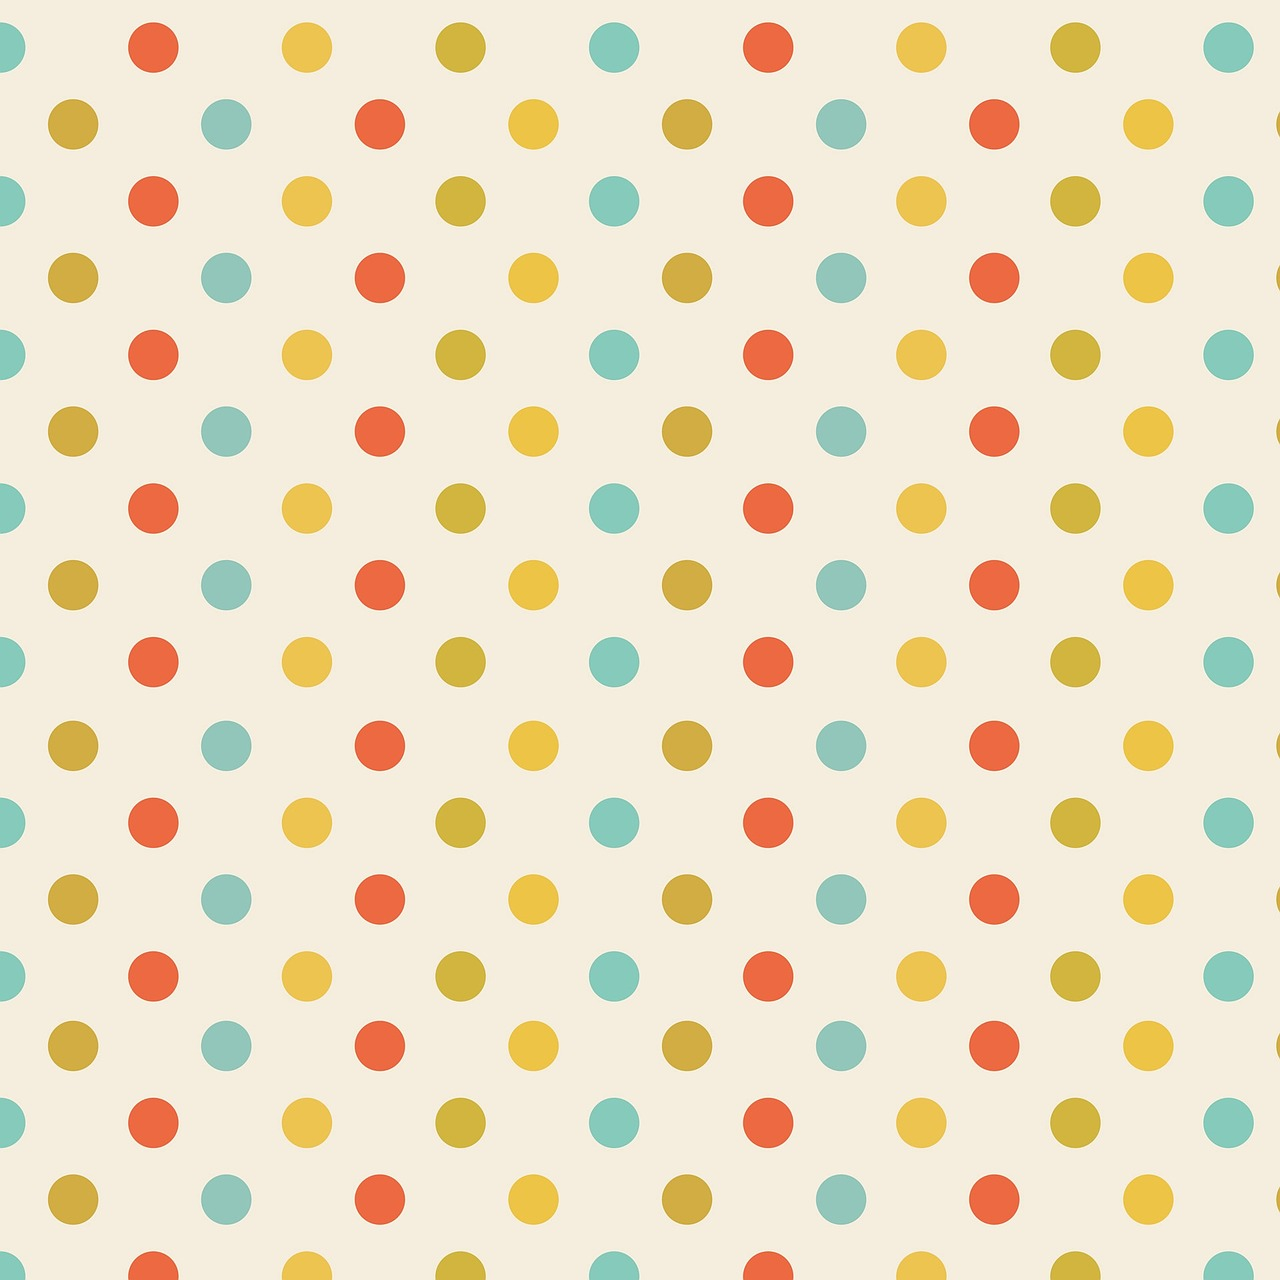 polka dots,dots,spots,vintage,pattern,polka,design,background,wallpaper,paper,dot pattern,retro,backdrop,scrapbooking,background pattern,red,blue,yellow,vector pattern,pattern vector,free pictures, free photos, free images, royalty free, free illustrations